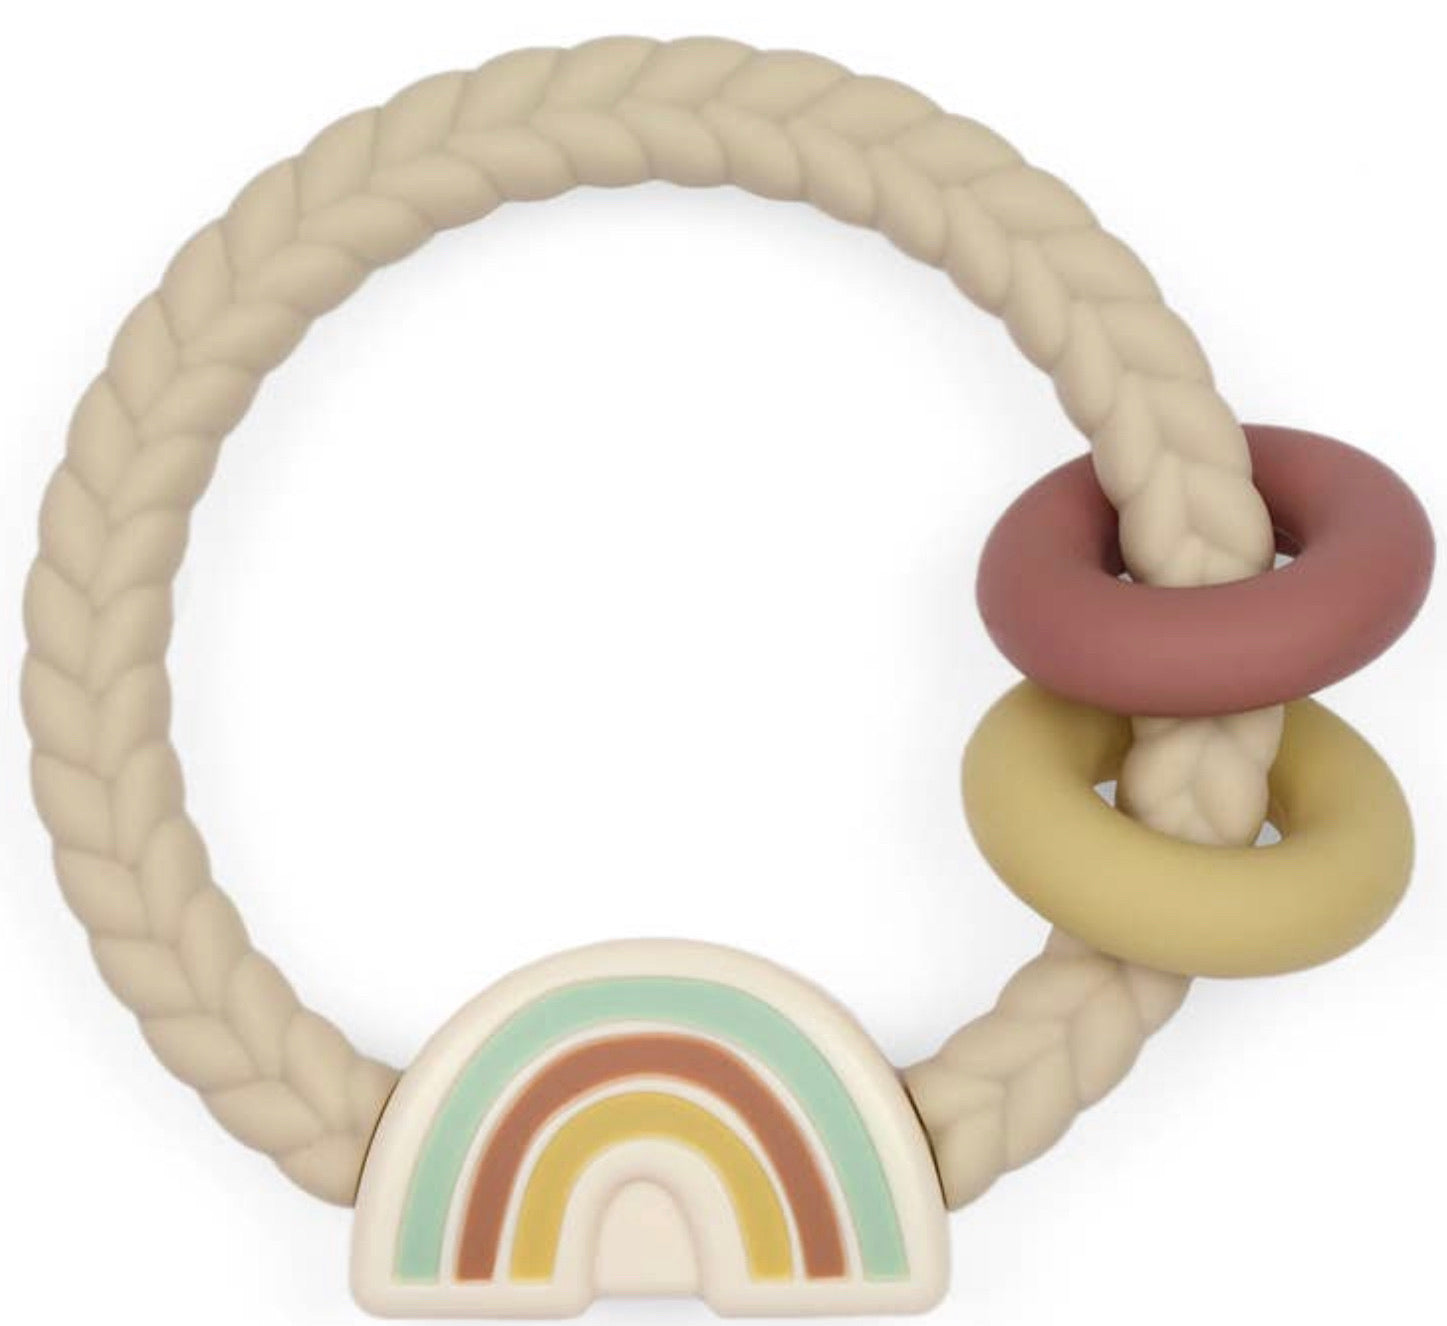 Itzy Ritzy Rattle Silicone Teether Rattle